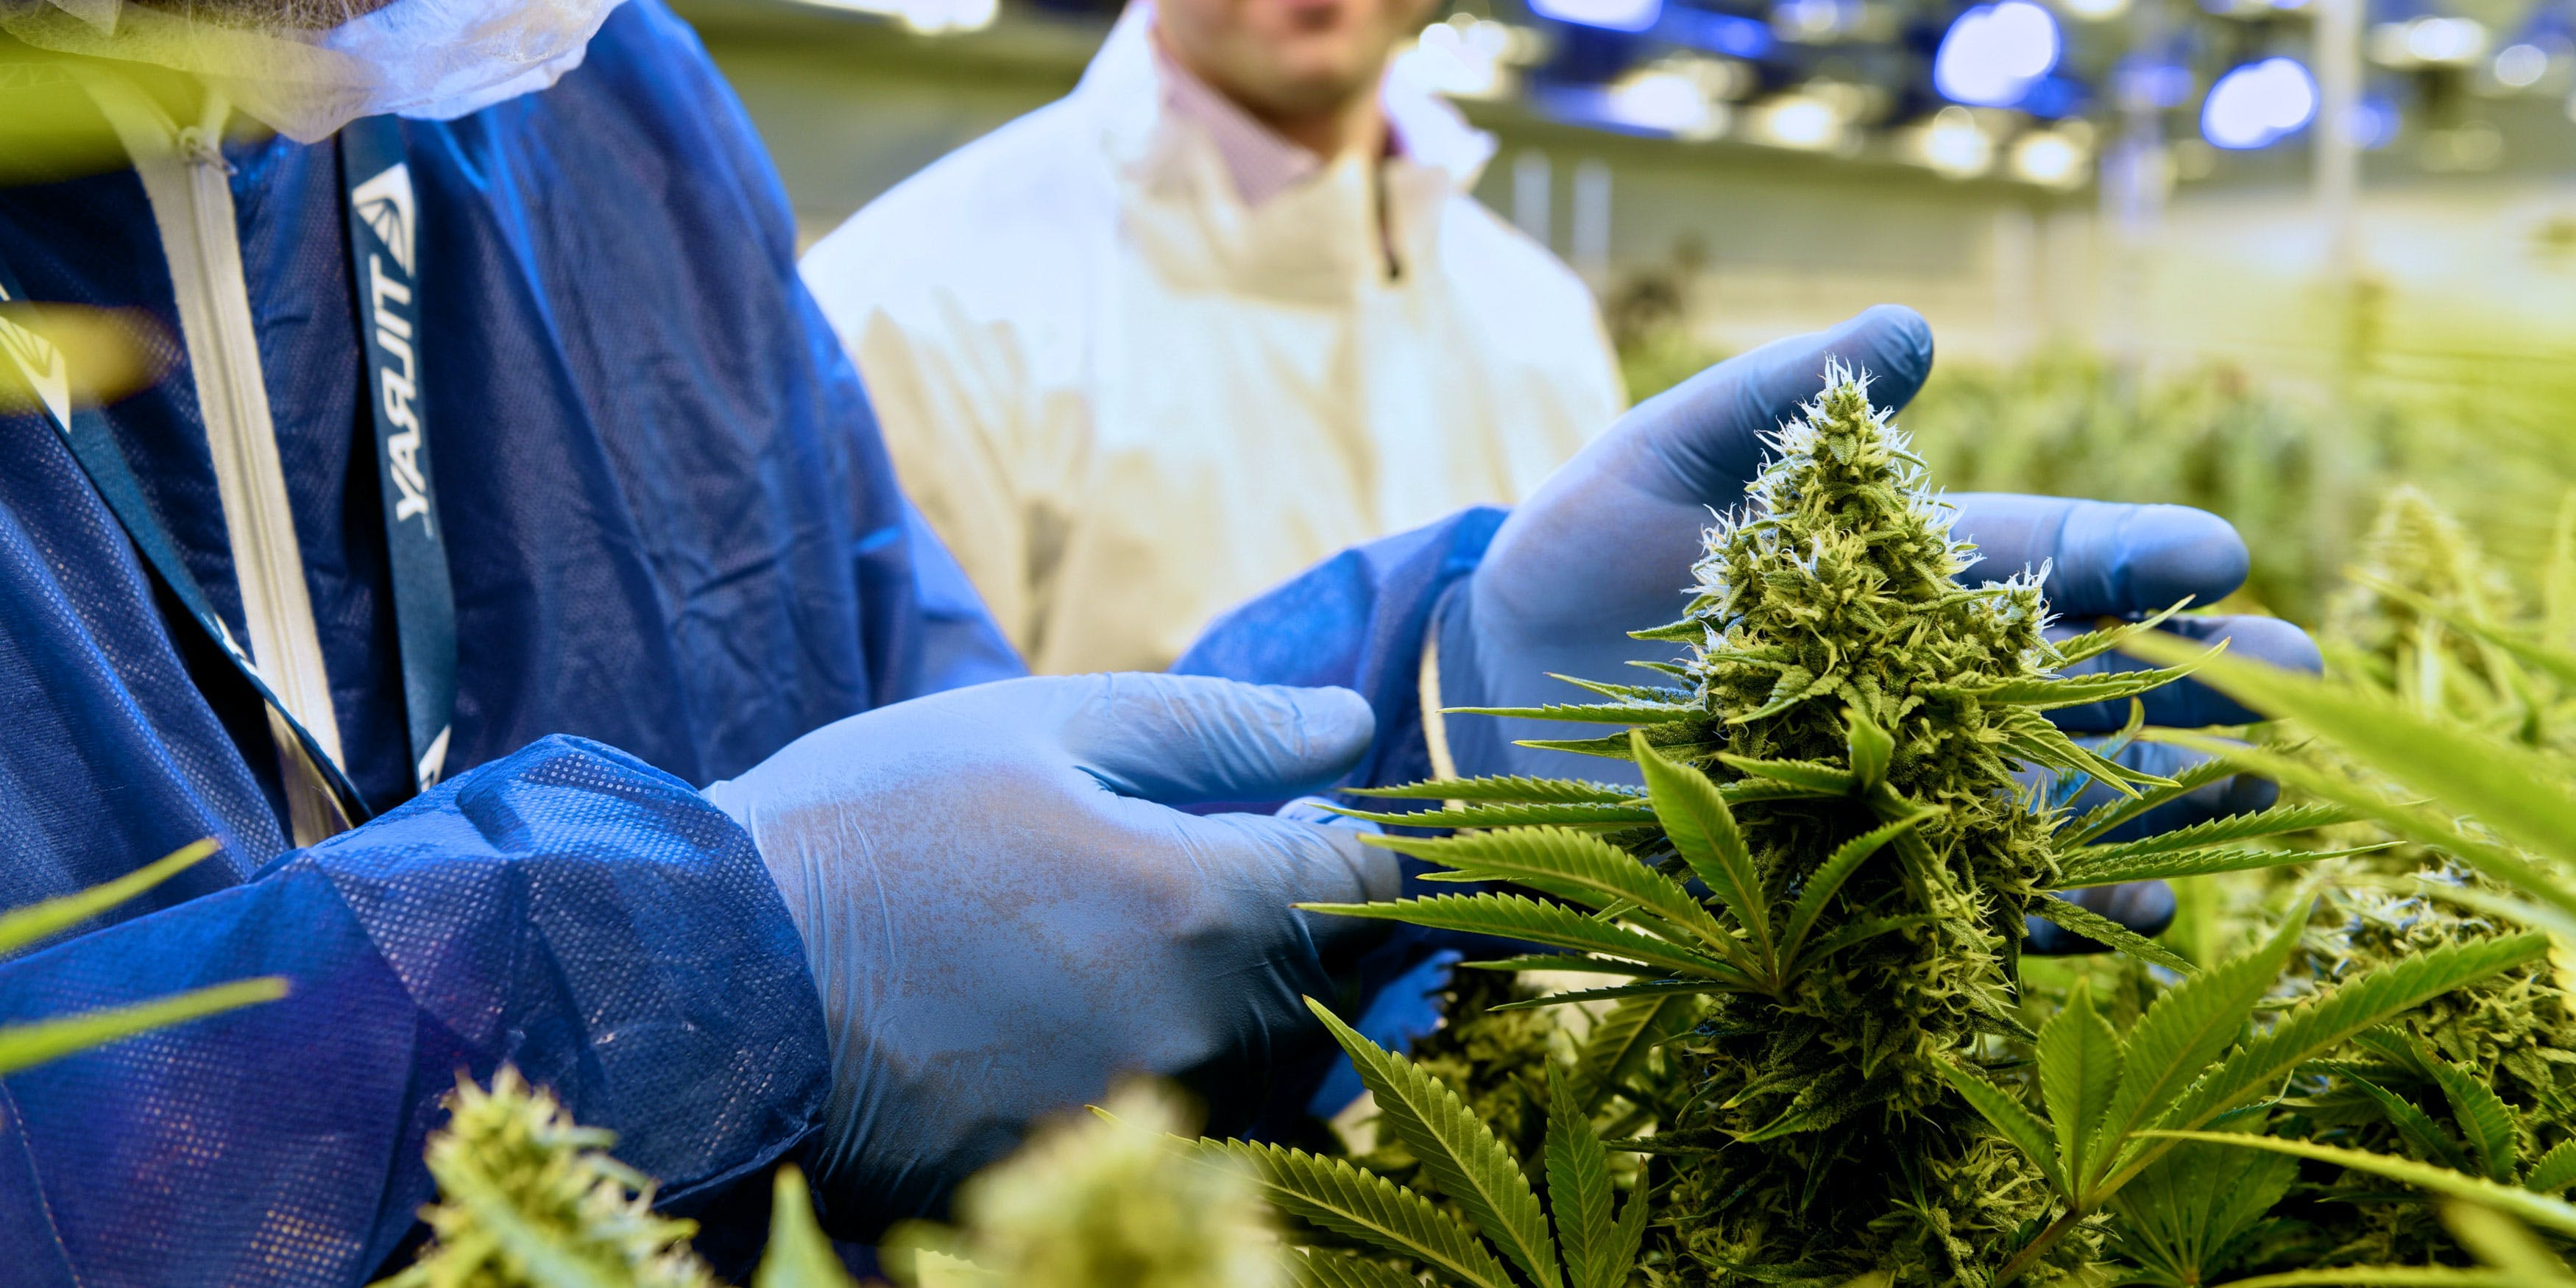 Tilray employees inspecting cannabis plants at the Tilray Facility. Tilray received approval from the DEA to send cannabis for research to the U.S.